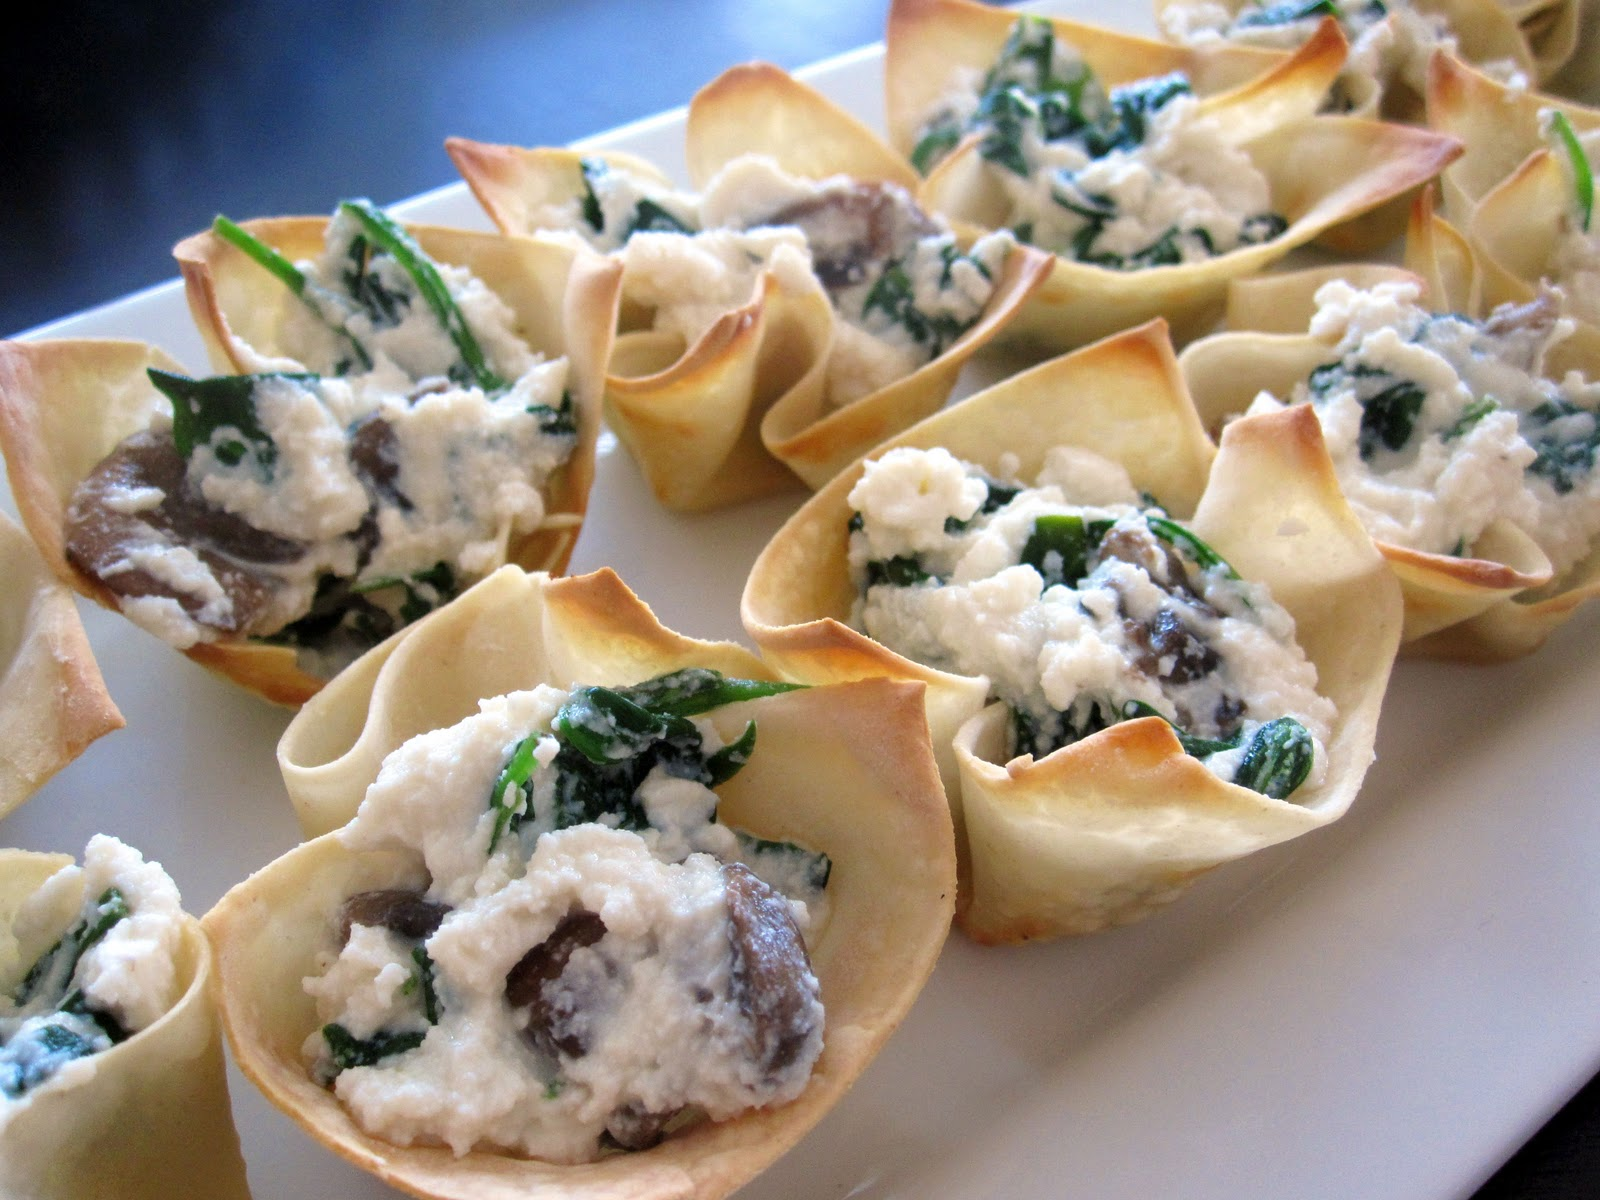 ... the Kitchen: Wonton Cups with Spinach and Mushroom Ricotta Filling